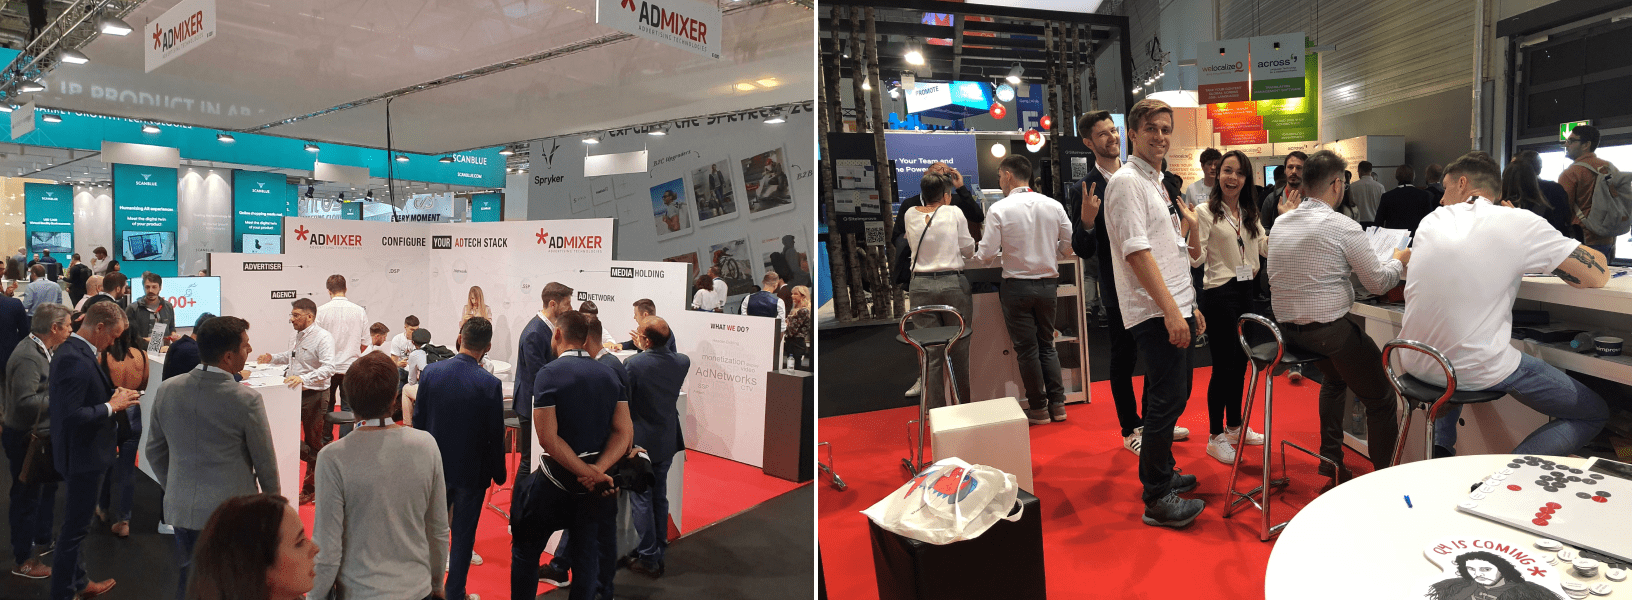 Admixer Takeaways - DMEXCO -Agencies - ad networks - digital marketing -Transparency - Supply chain - media - Adtech - Ad tech stack - Digital media - Trends - Mobile - Data Privacy - 2